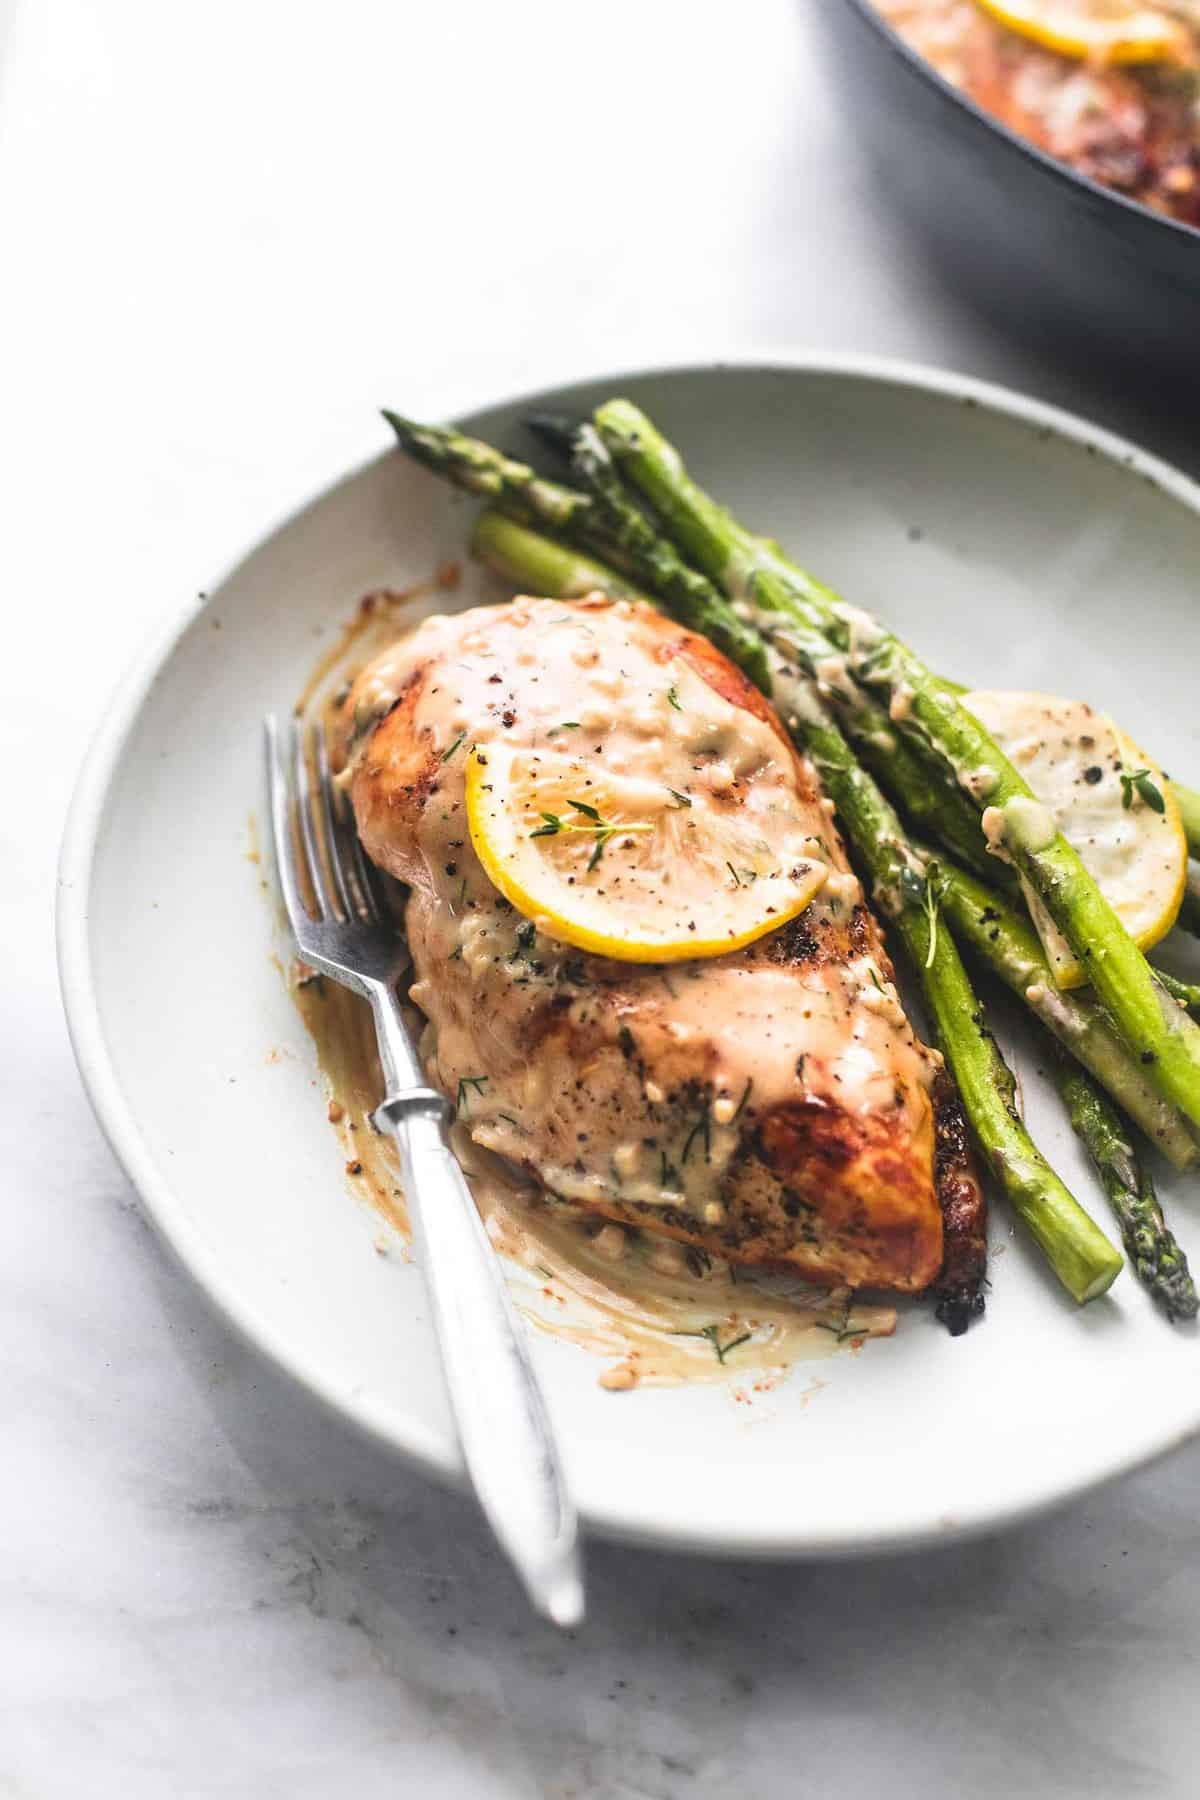 Easy One Pan Creamy Lemon Chicken and Asparagus Dinner Recipe | lecremedelacrumb.com